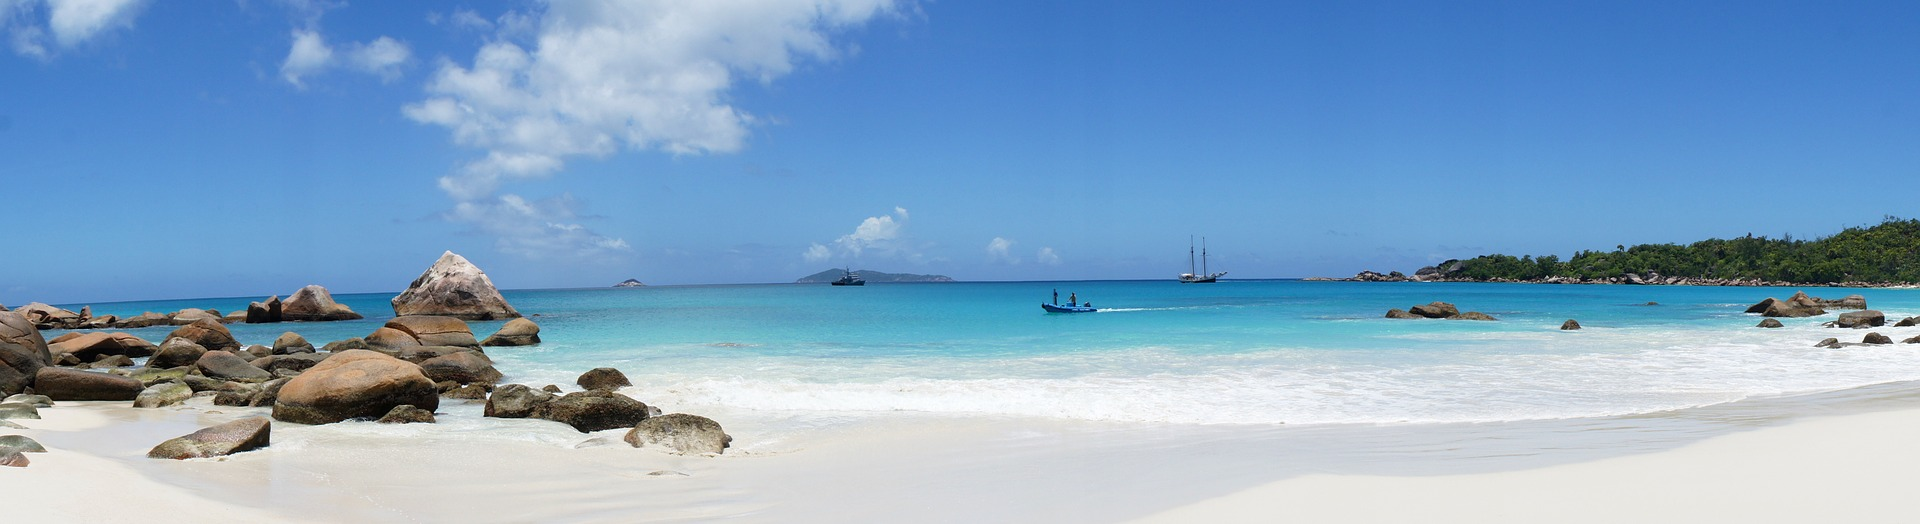 White sand beach with yachts.